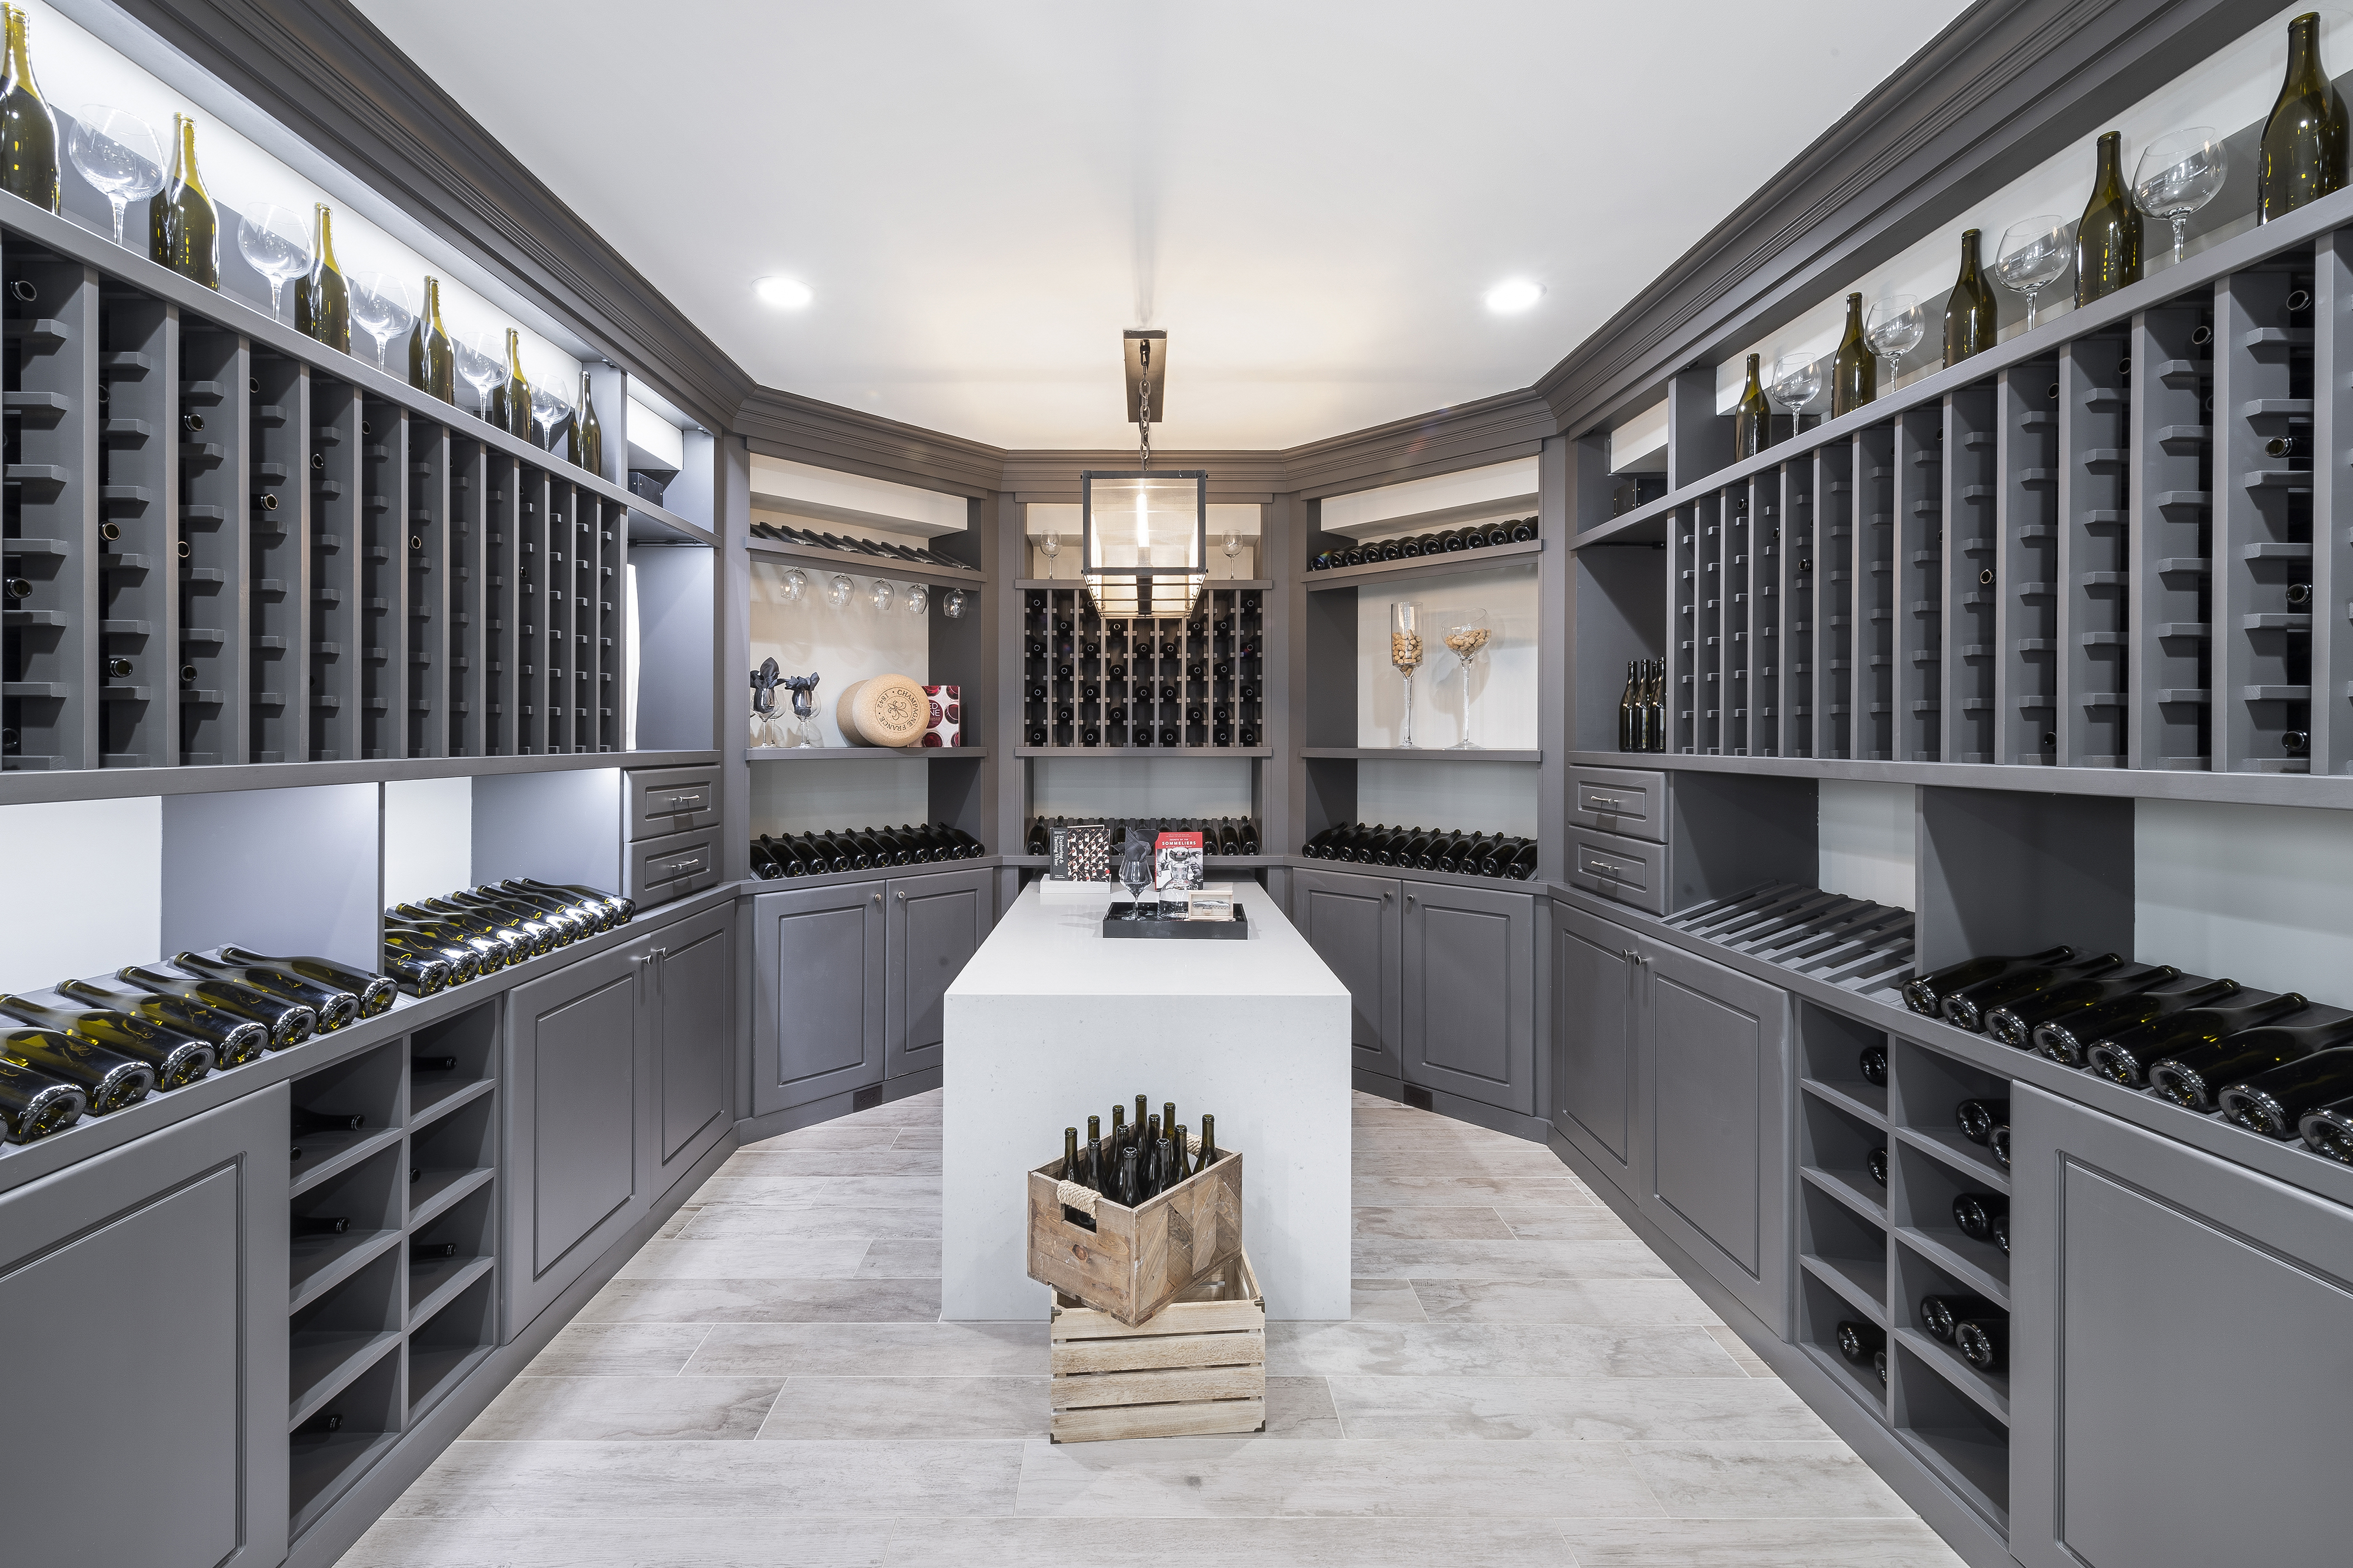 Wine cellar in a finished basement.